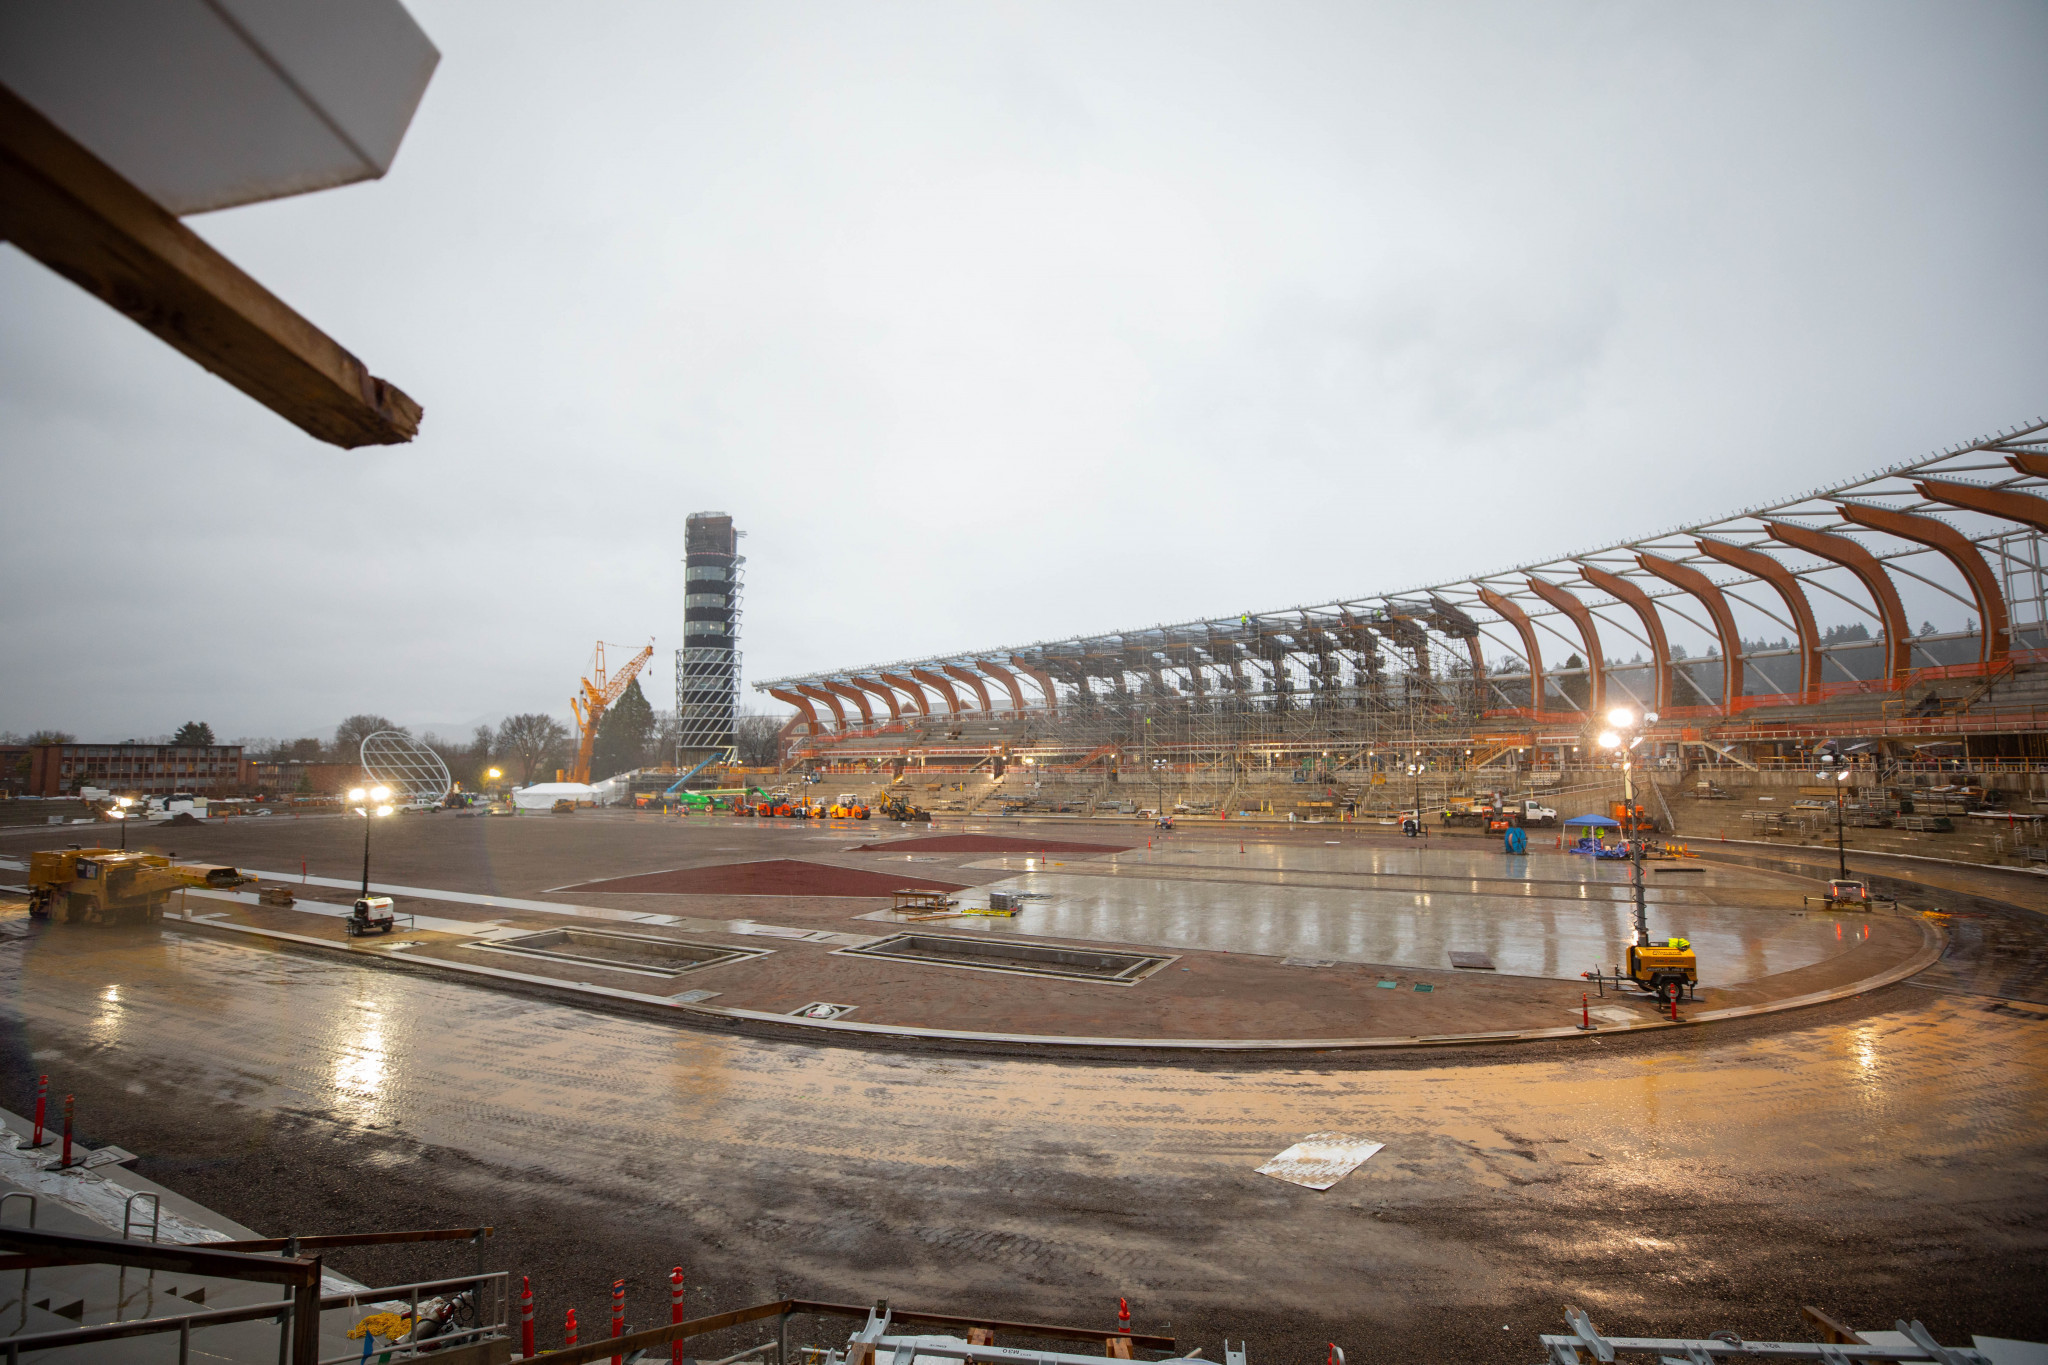 Hayward Field, being rebuilt specifically as an athletics stadium for the World Championships in Oregon, could well stage the event in 2022 ©Oregon 2021